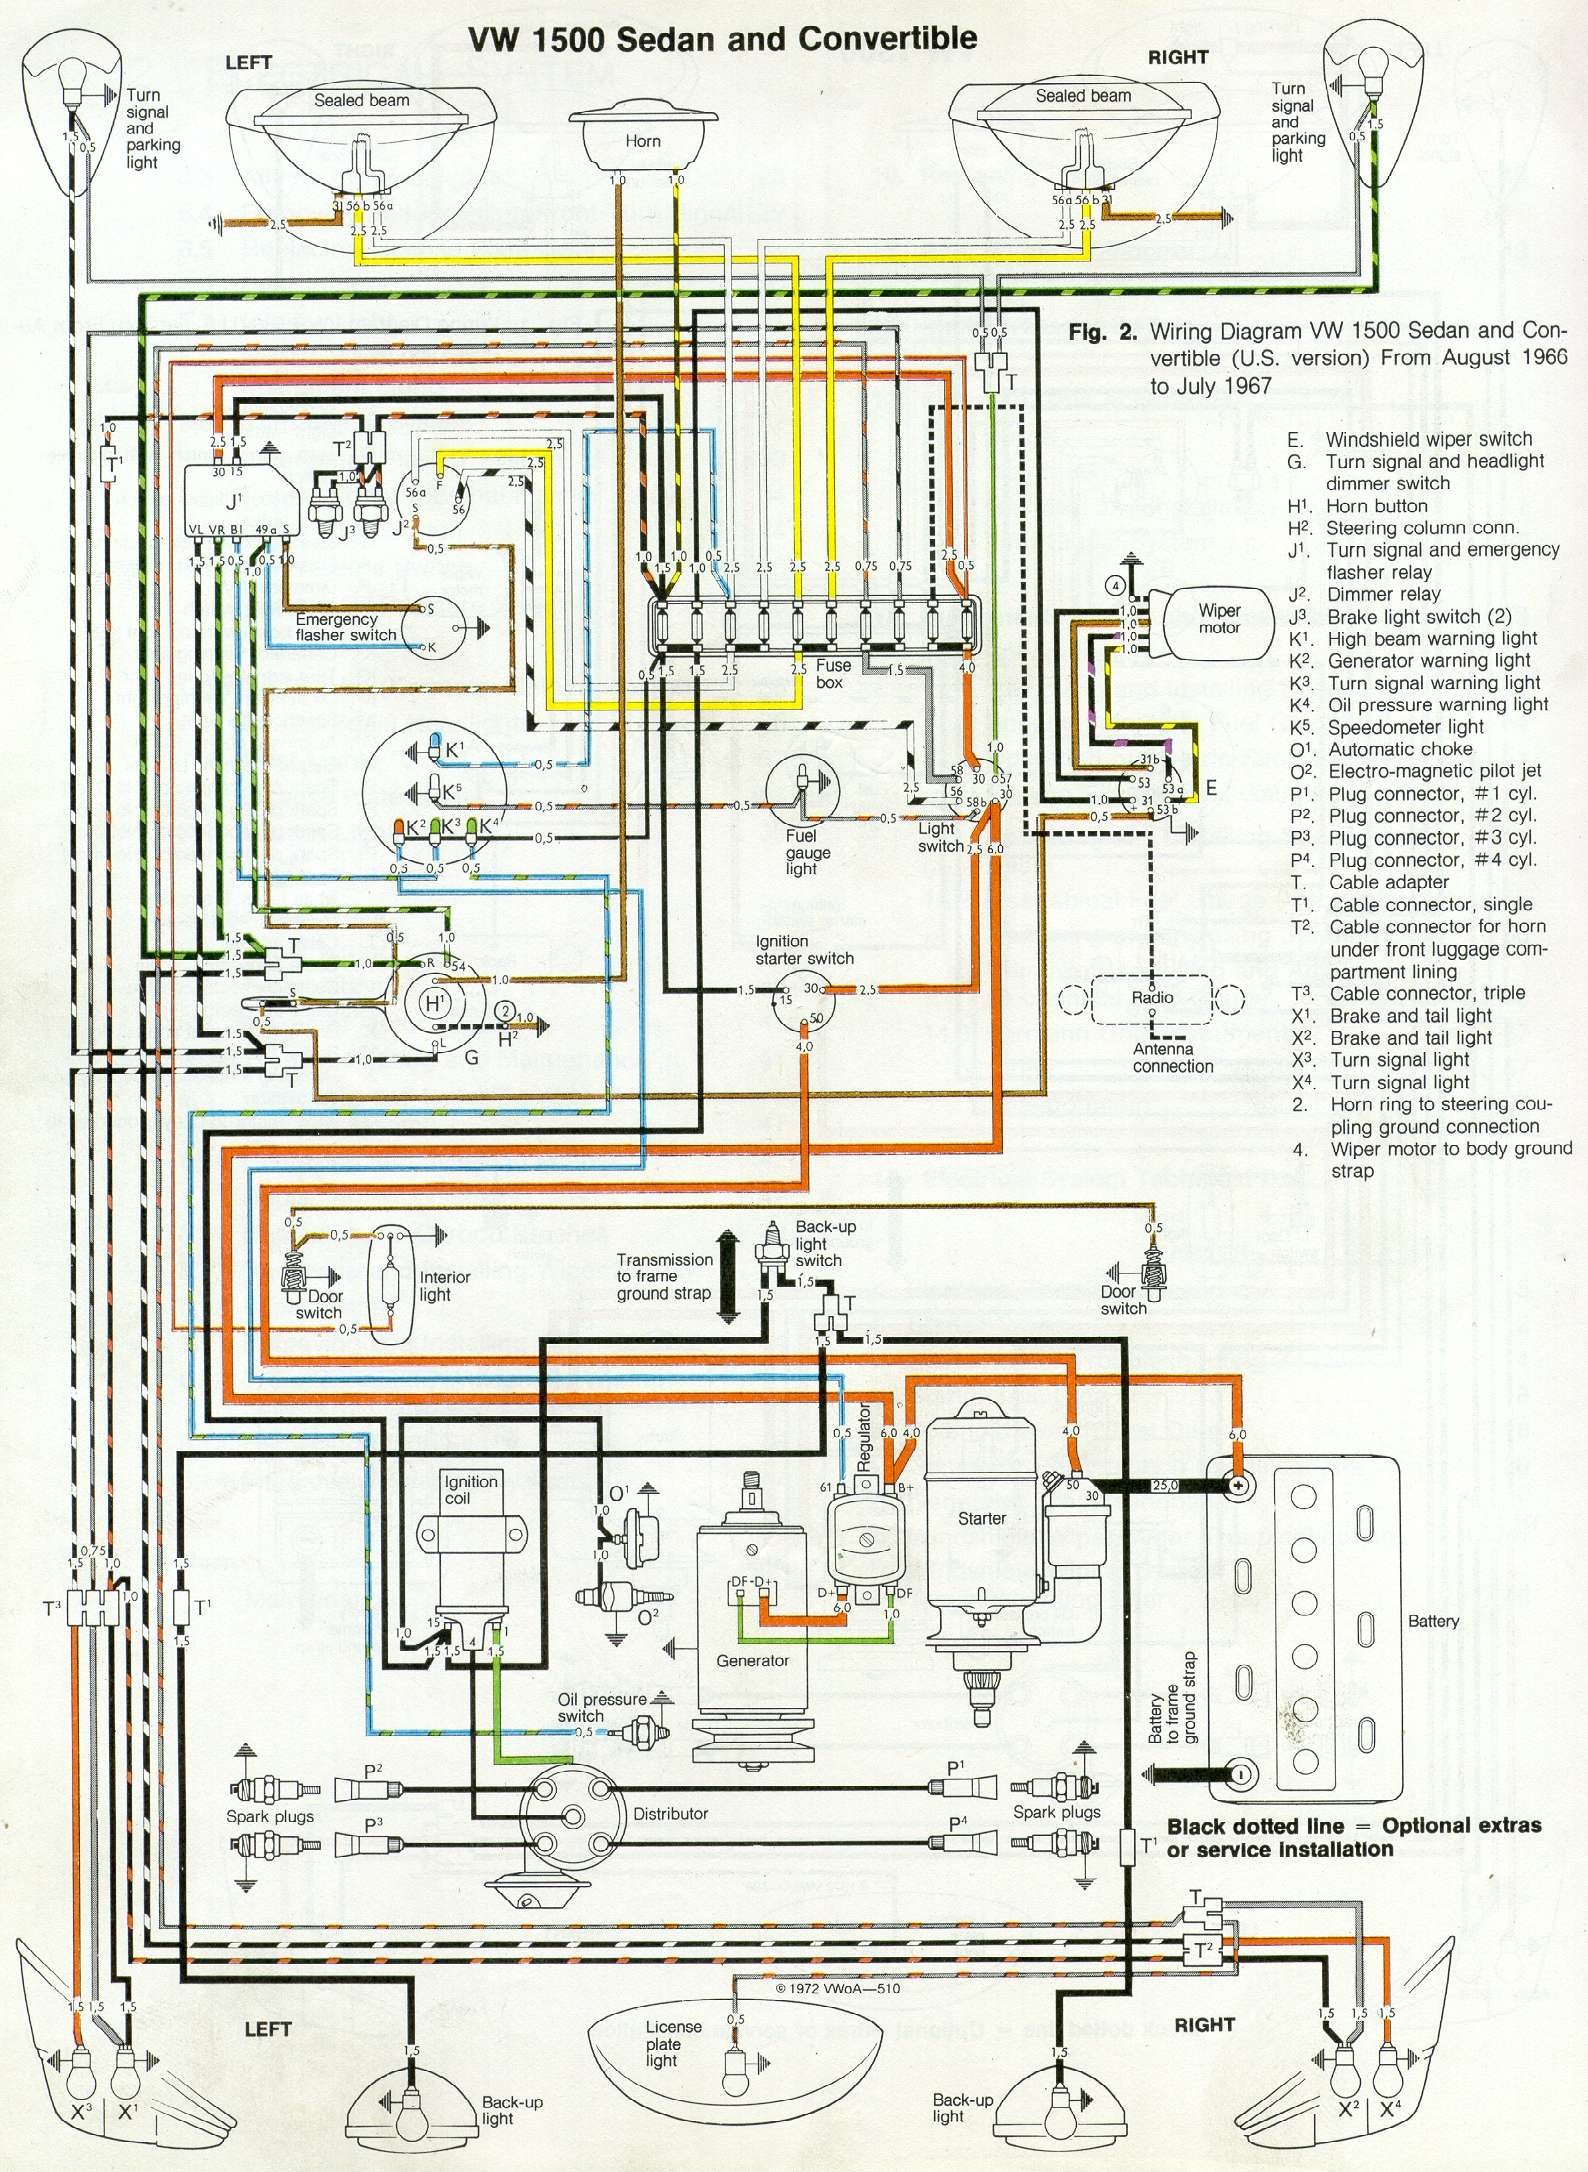 VW bug_1967 other diagrams vw beach buggy wiring diagram at pacquiaovsvargaslive.co